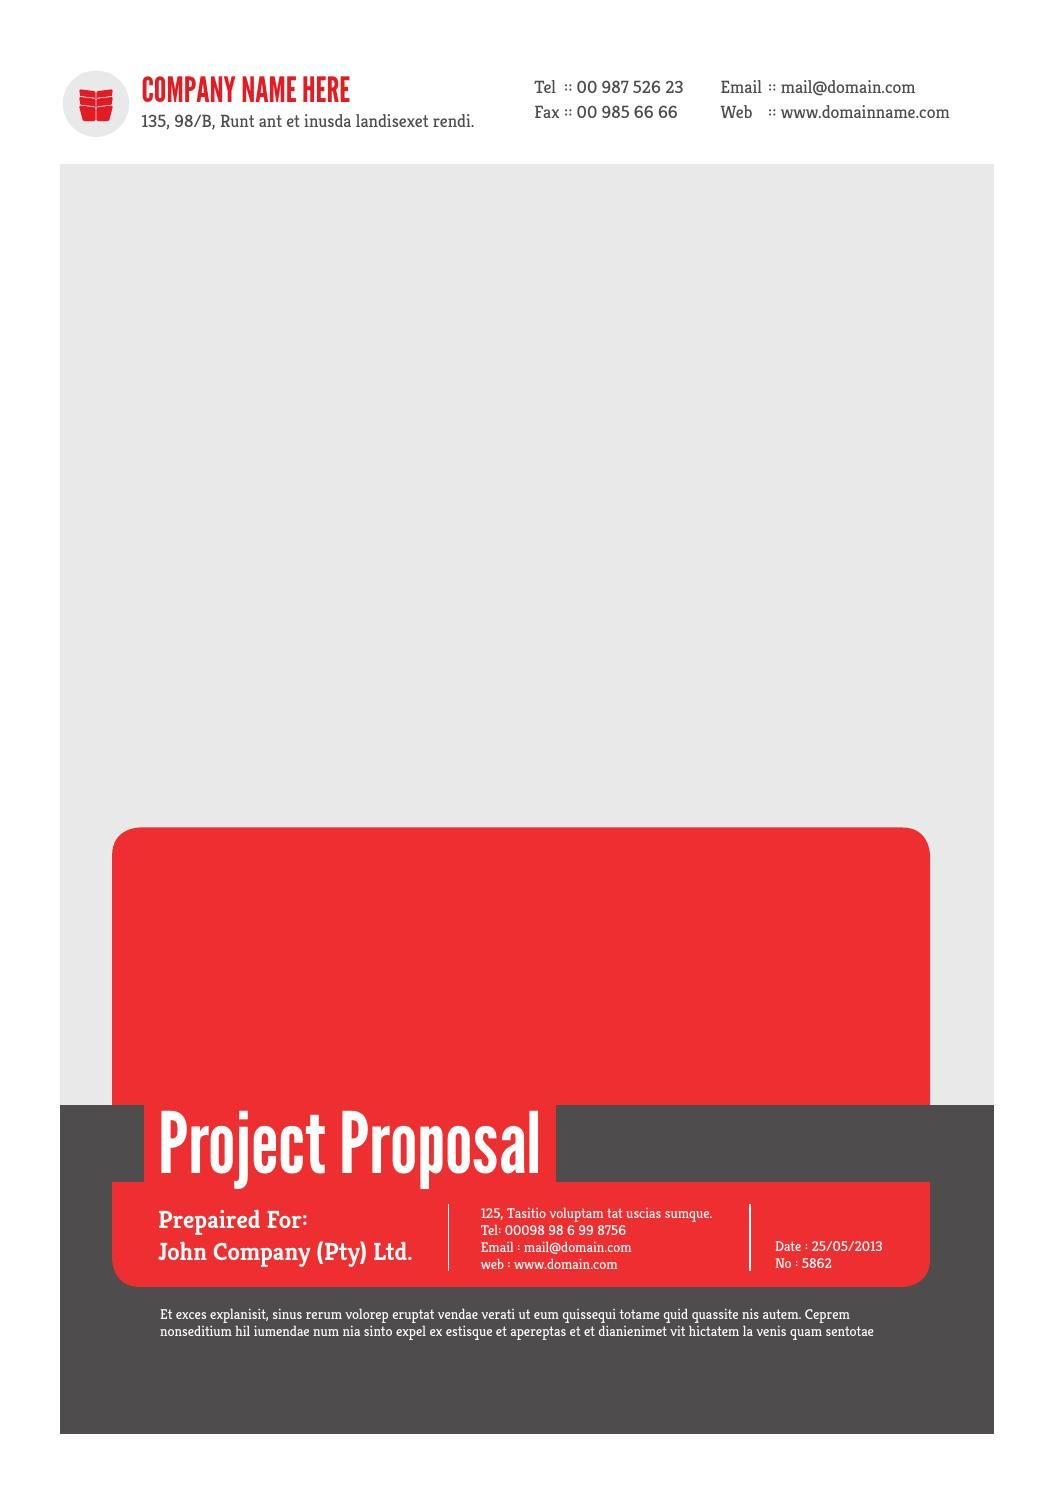 Project Proposal Template V1 | Pinterest | Propuestas